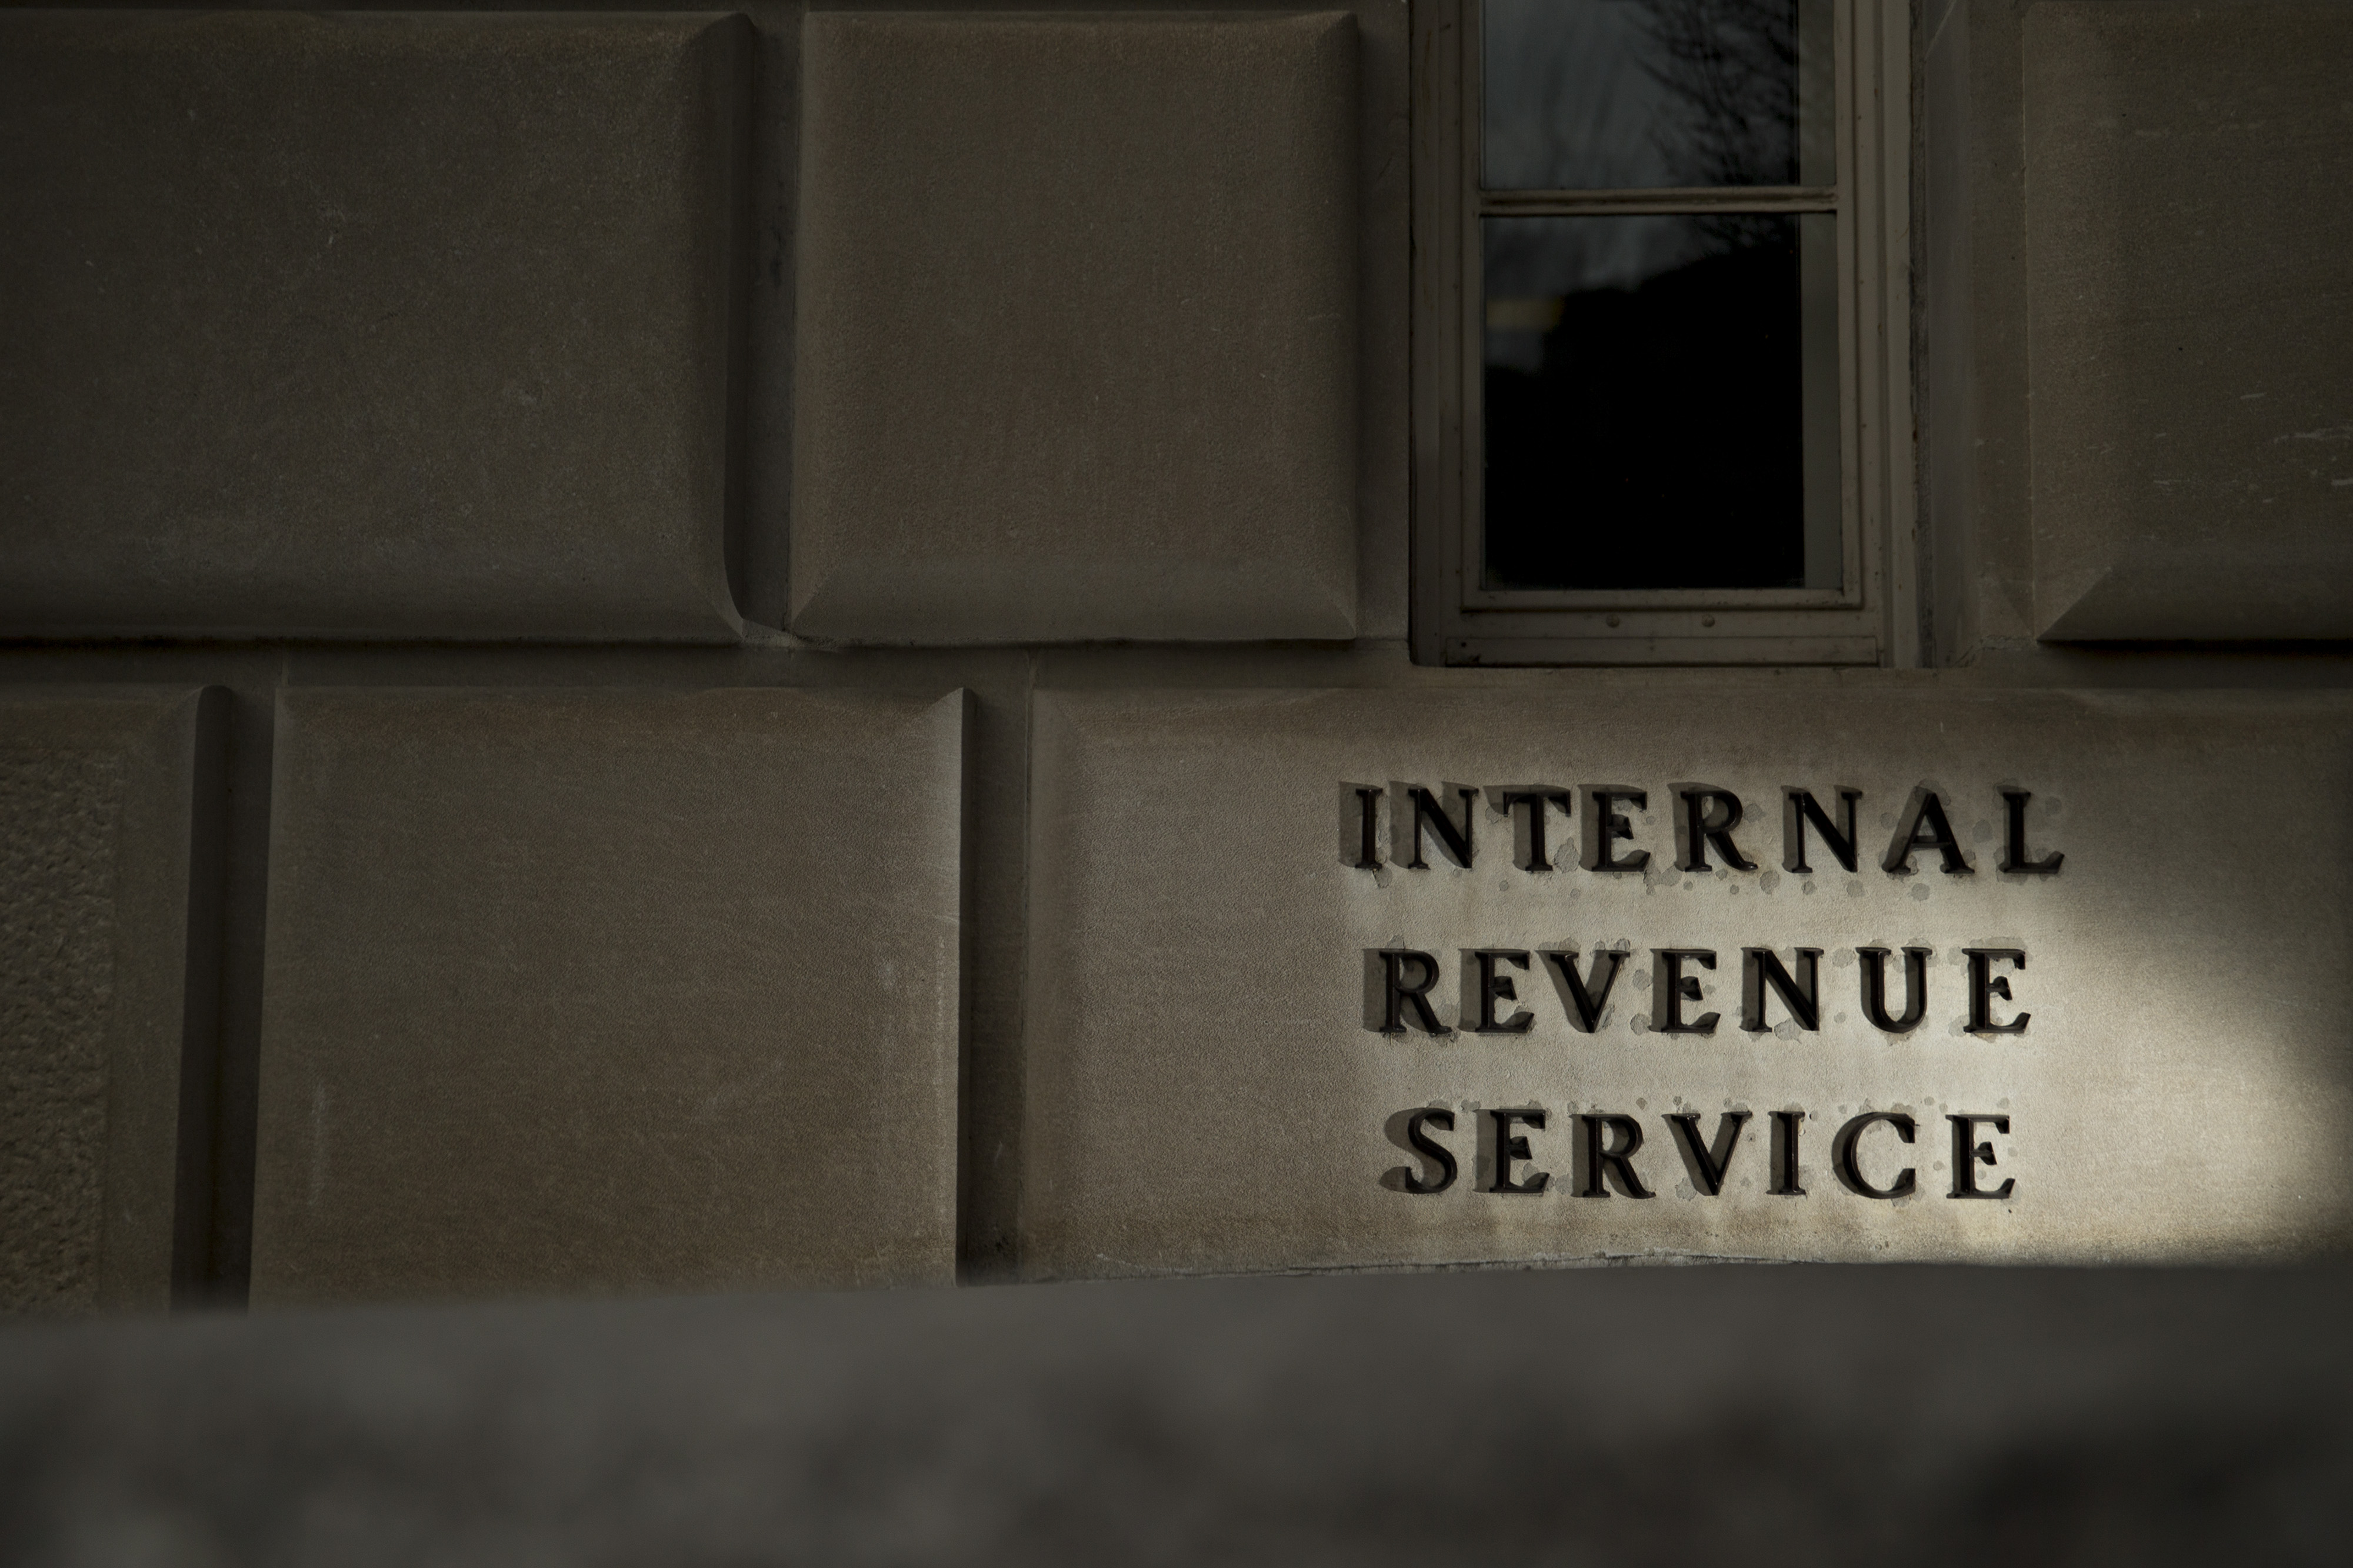 Views Of The IRS Headquarters During Tax Filing Season